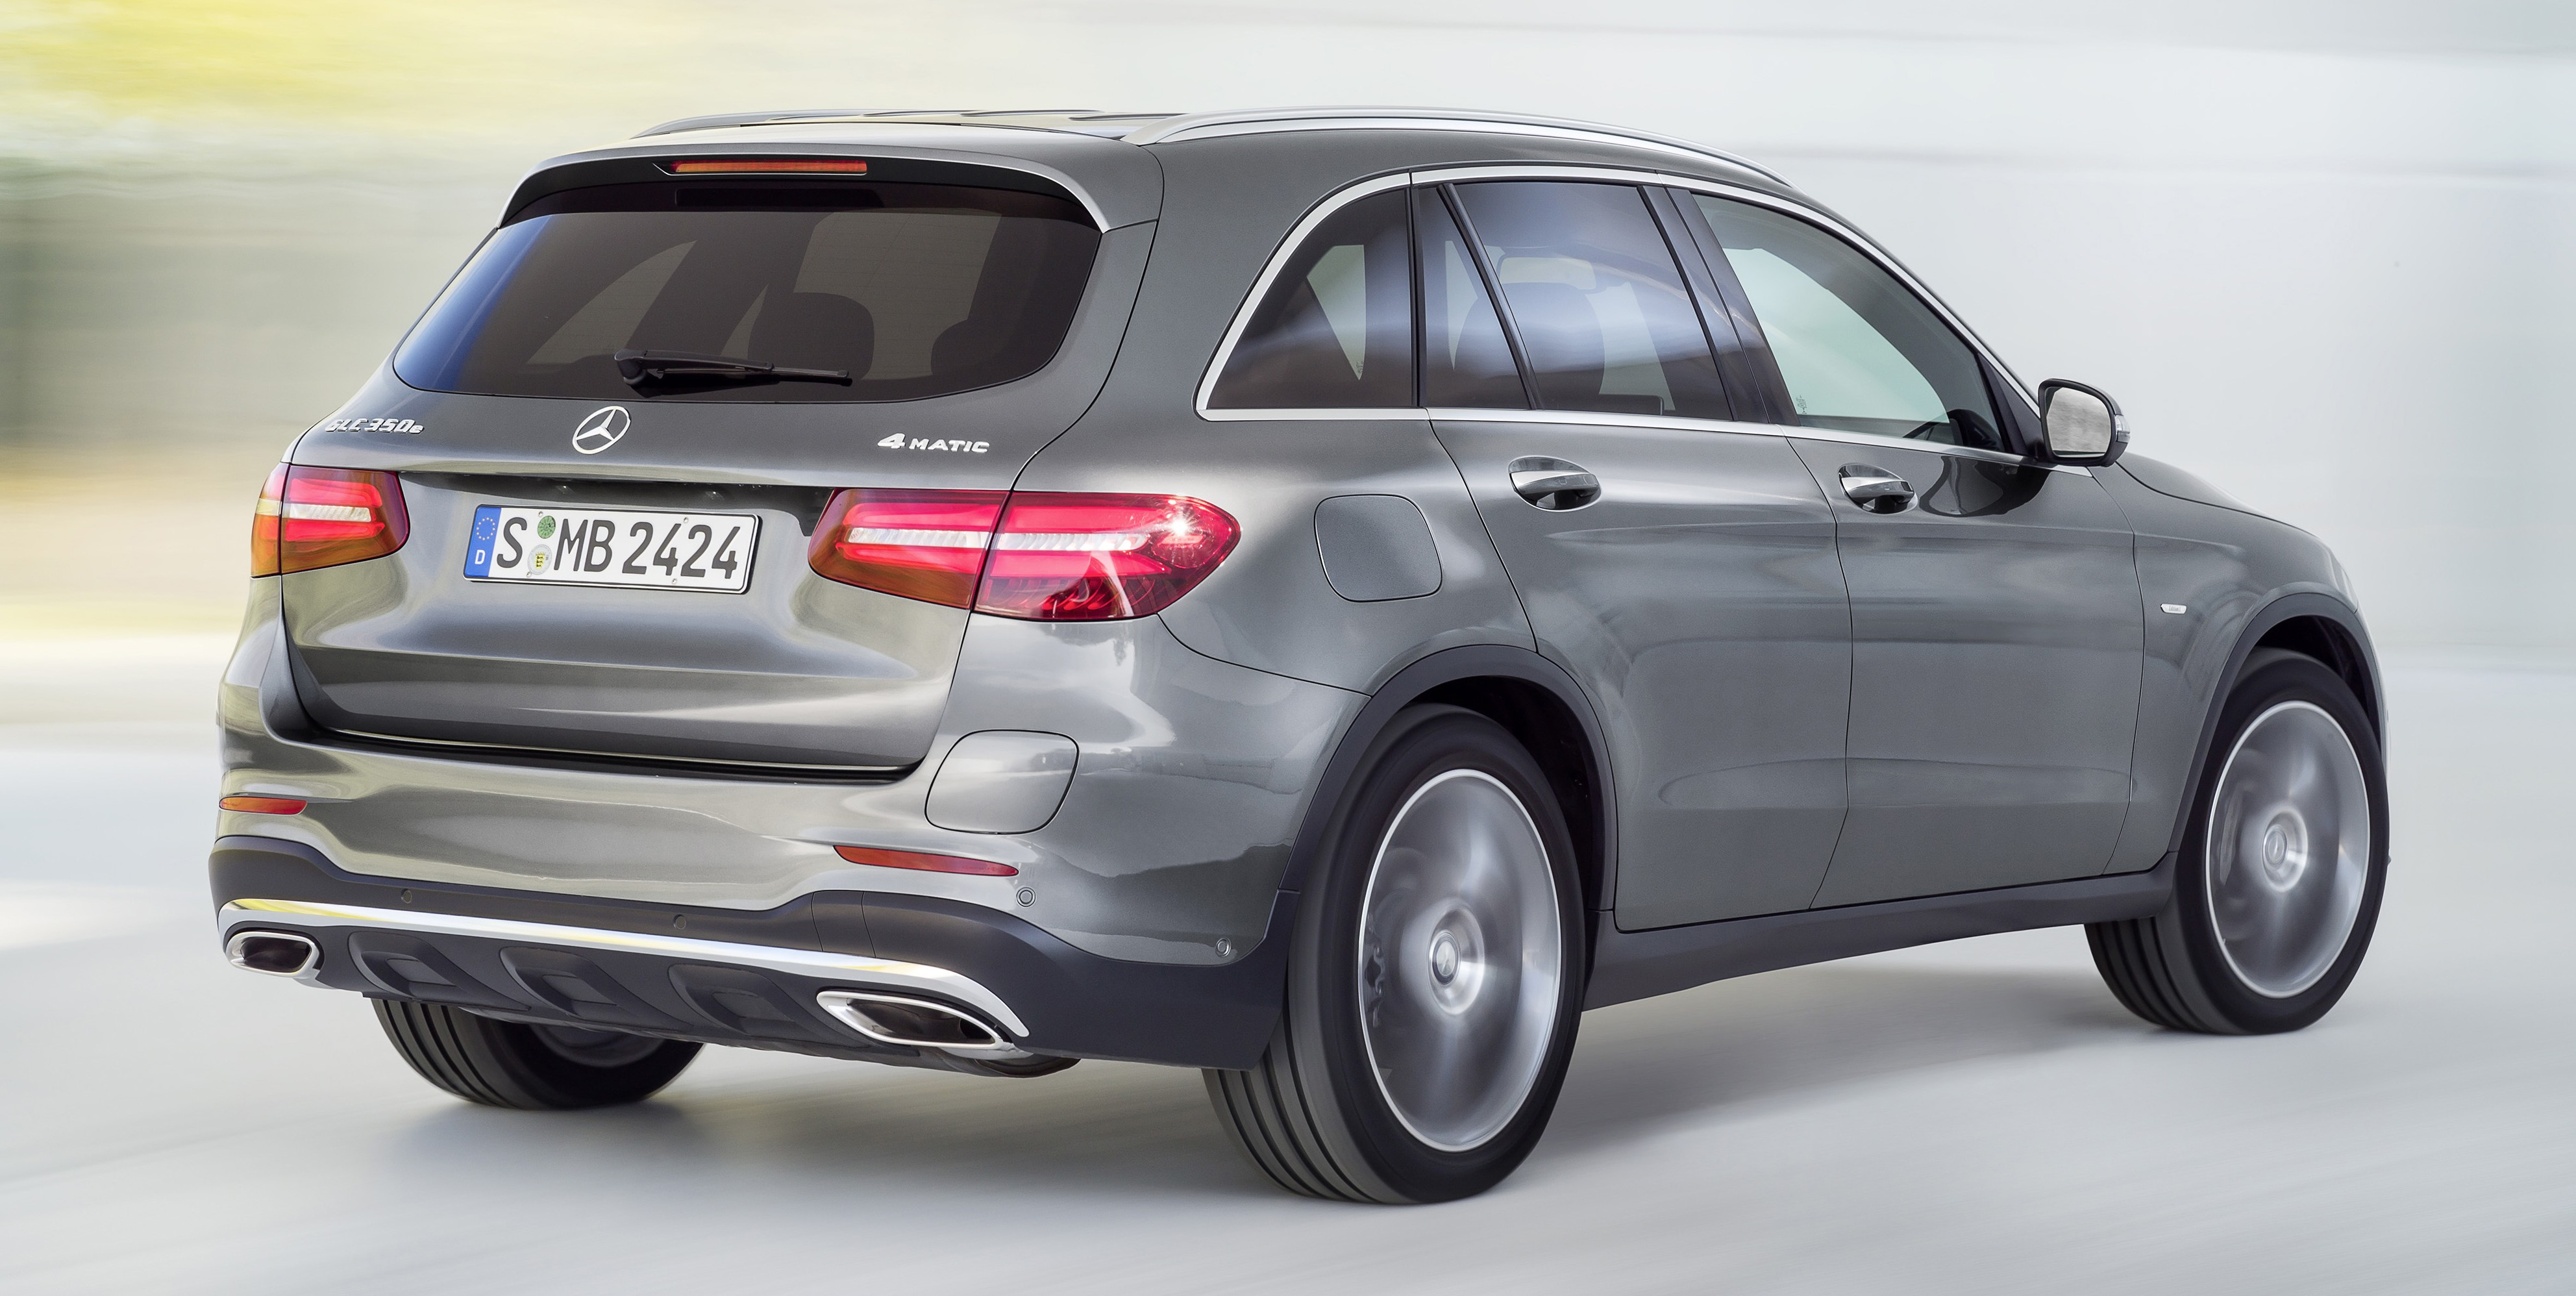 Image gallery mb glc 450 for Mercedes benz 450 suv price